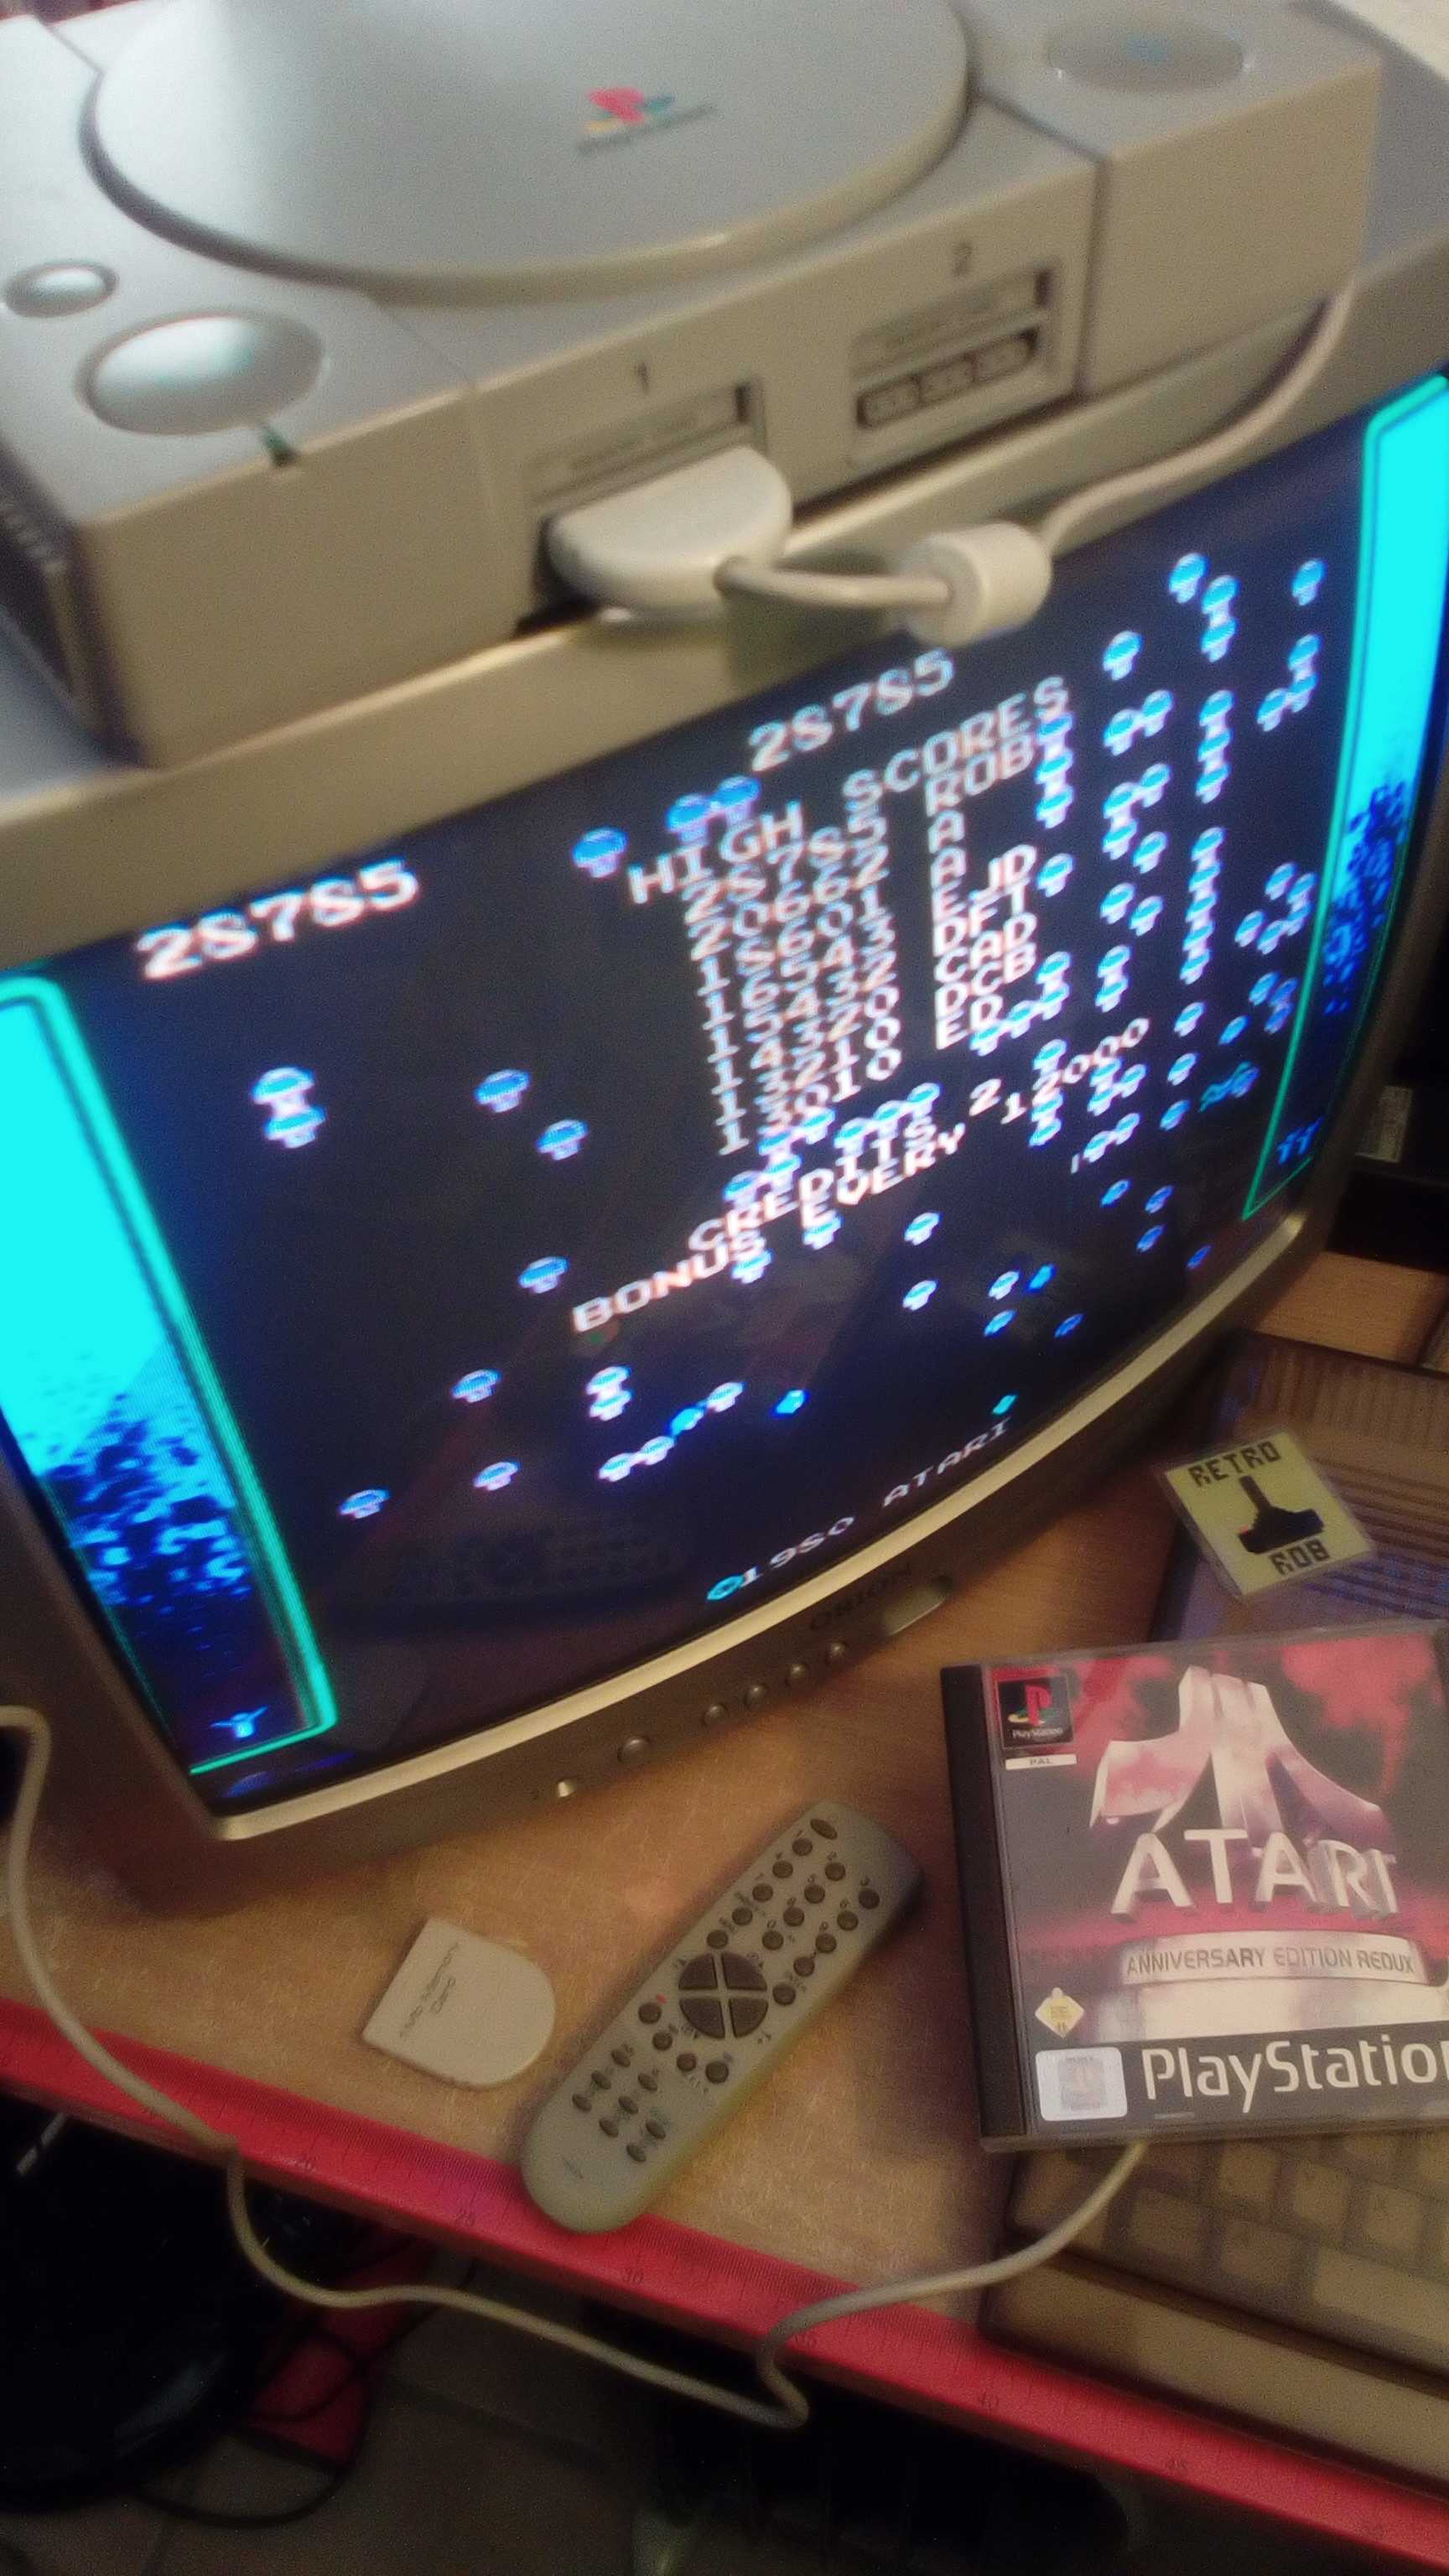 RetroRob: Atari Anniversary Edition Redux [Centipede] (Playstation 1) 28,785 points on 2020-03-29 04:48:58